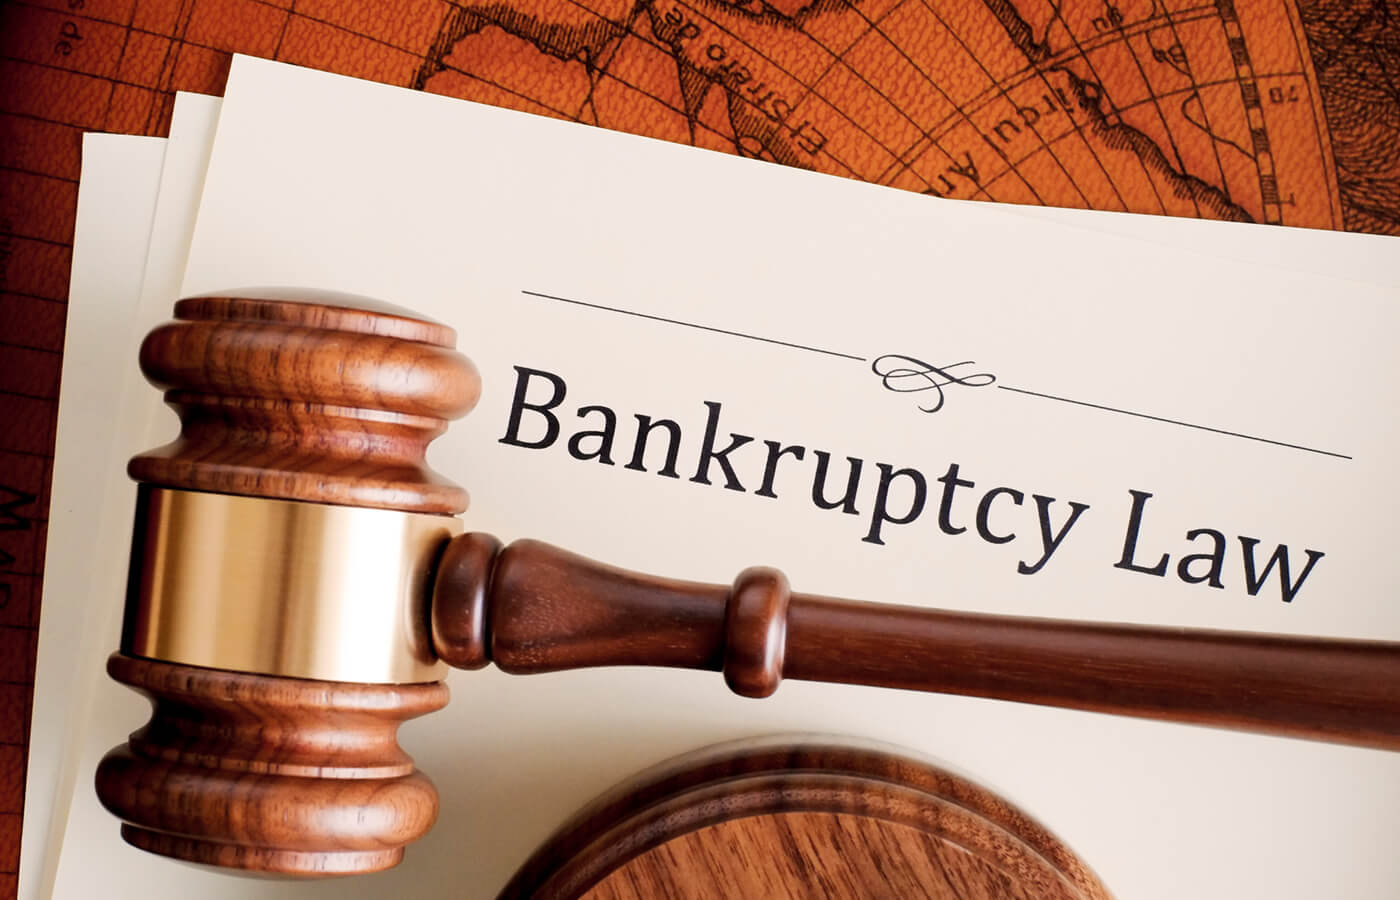 bankruptcy: chapter 7 vs. chapter 13 | experian